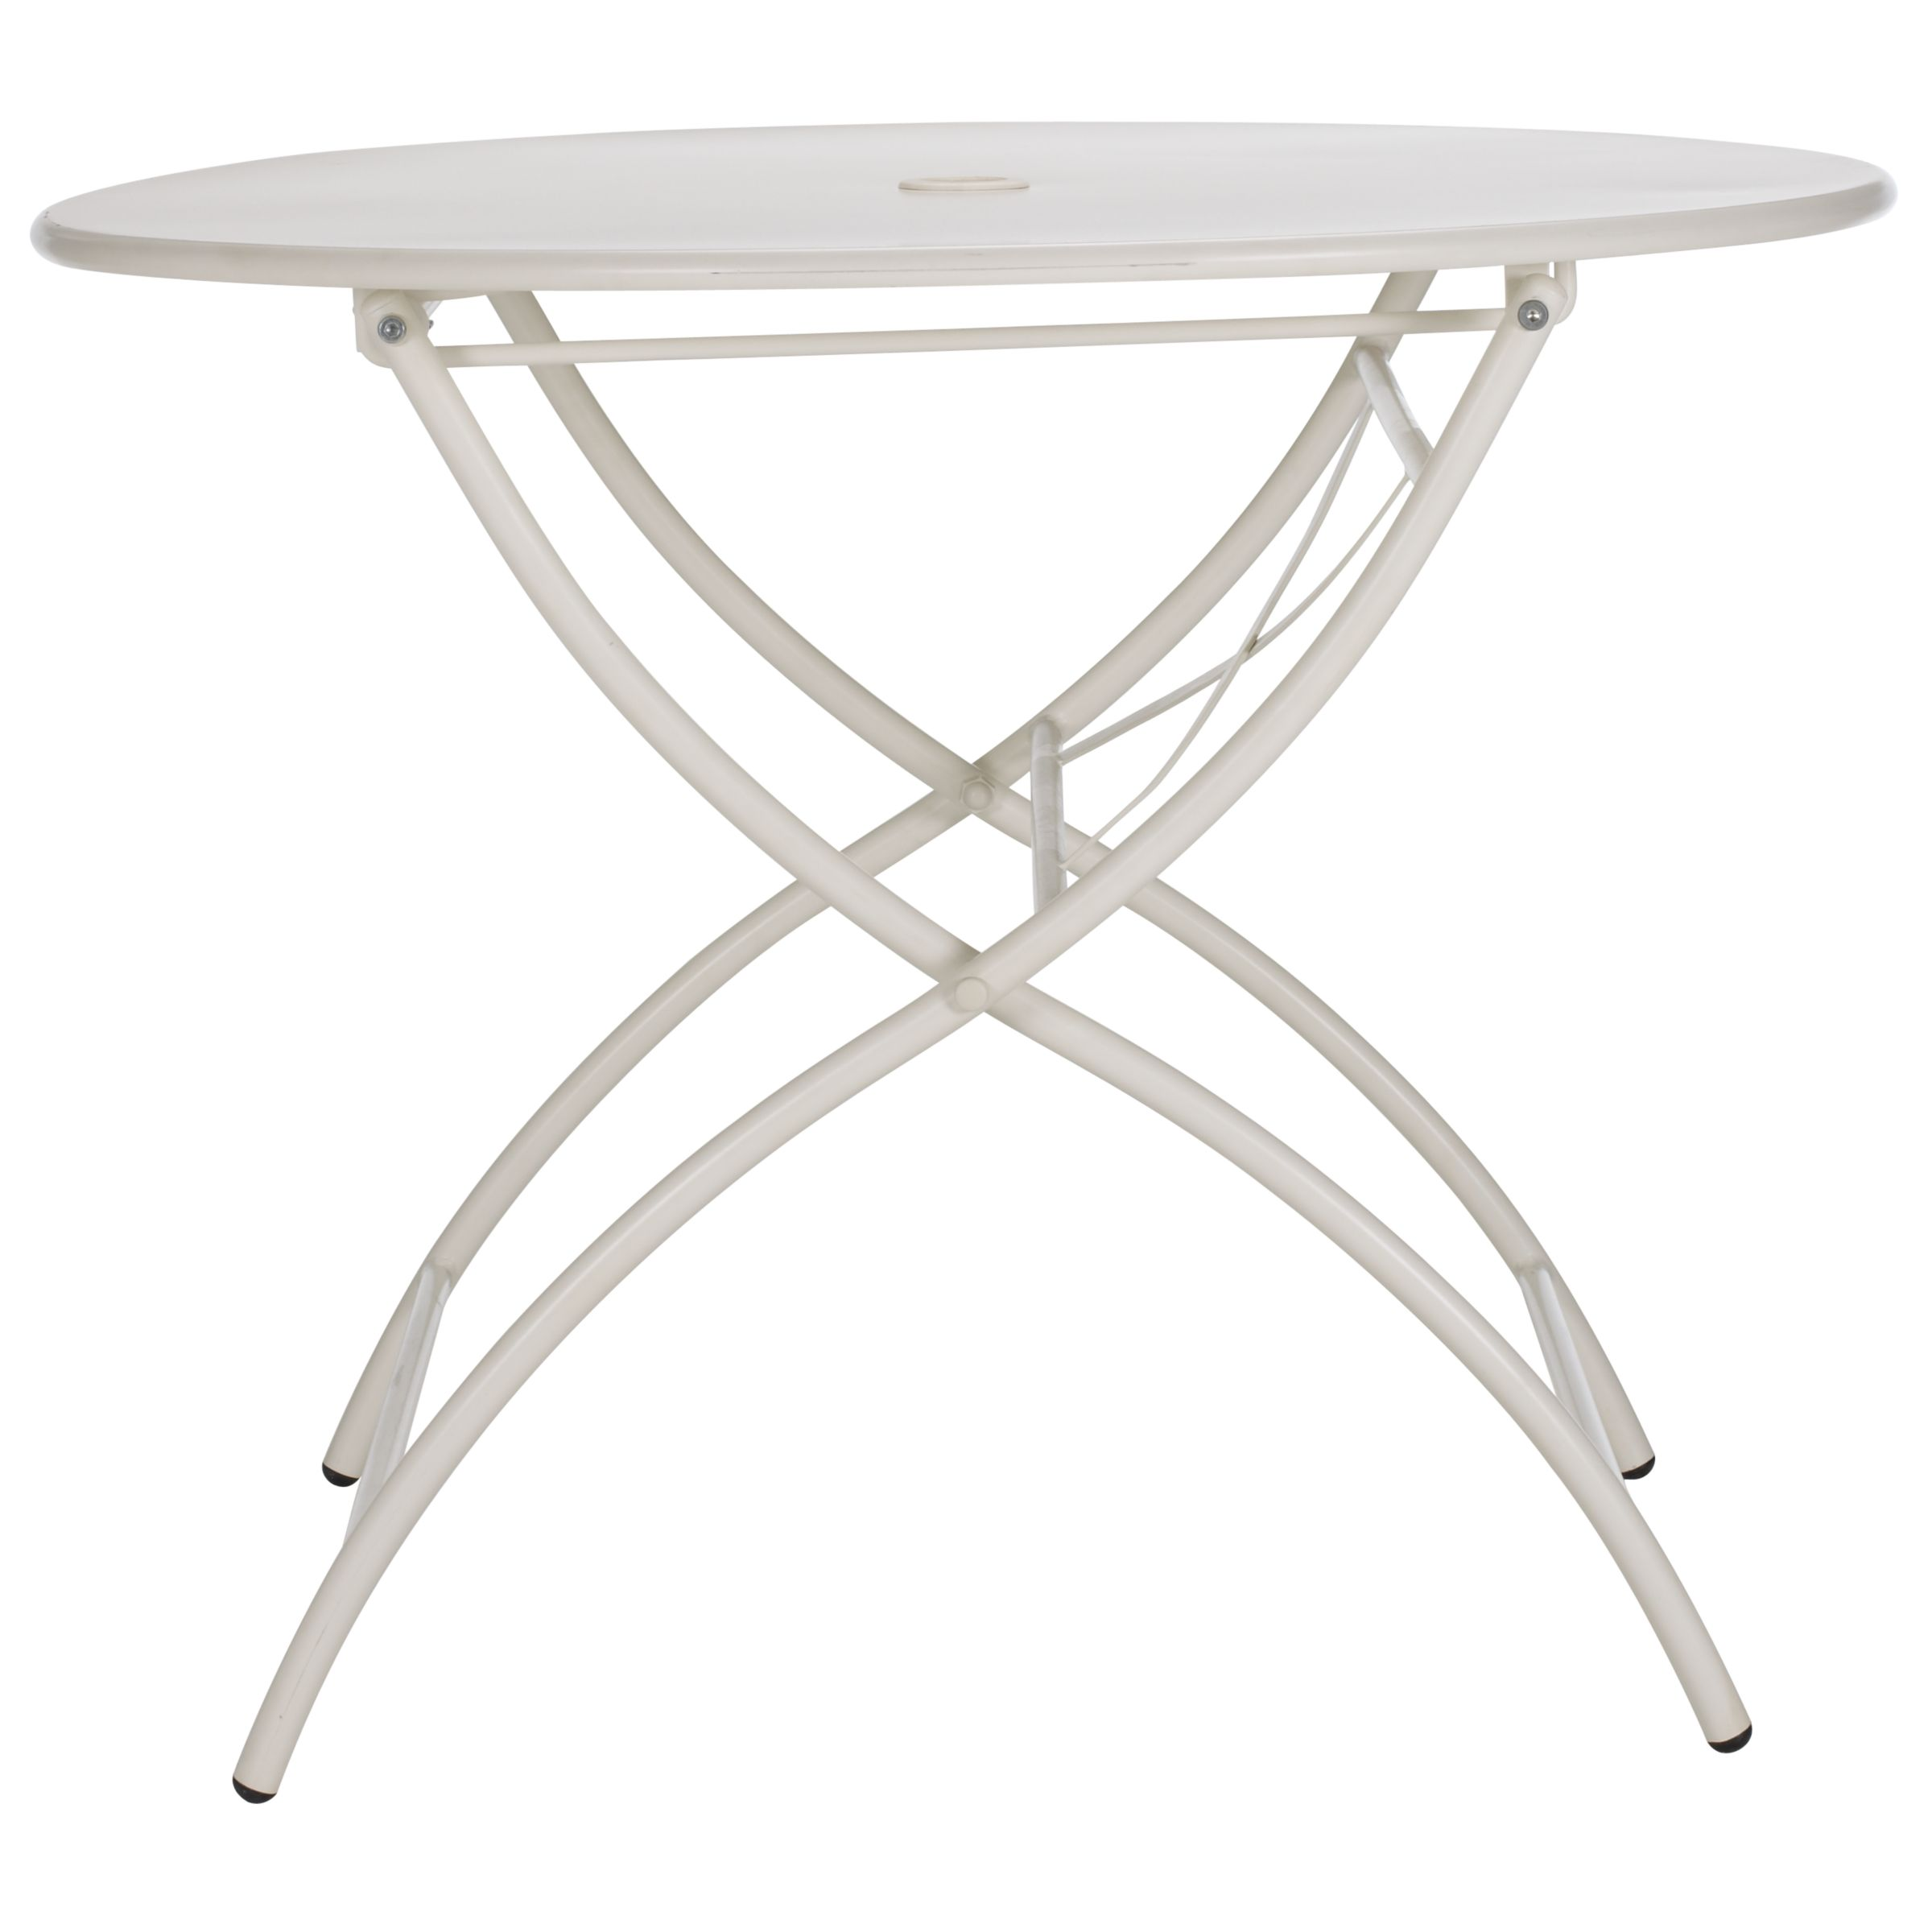 John Lewis Bella Outdoor Dining Table